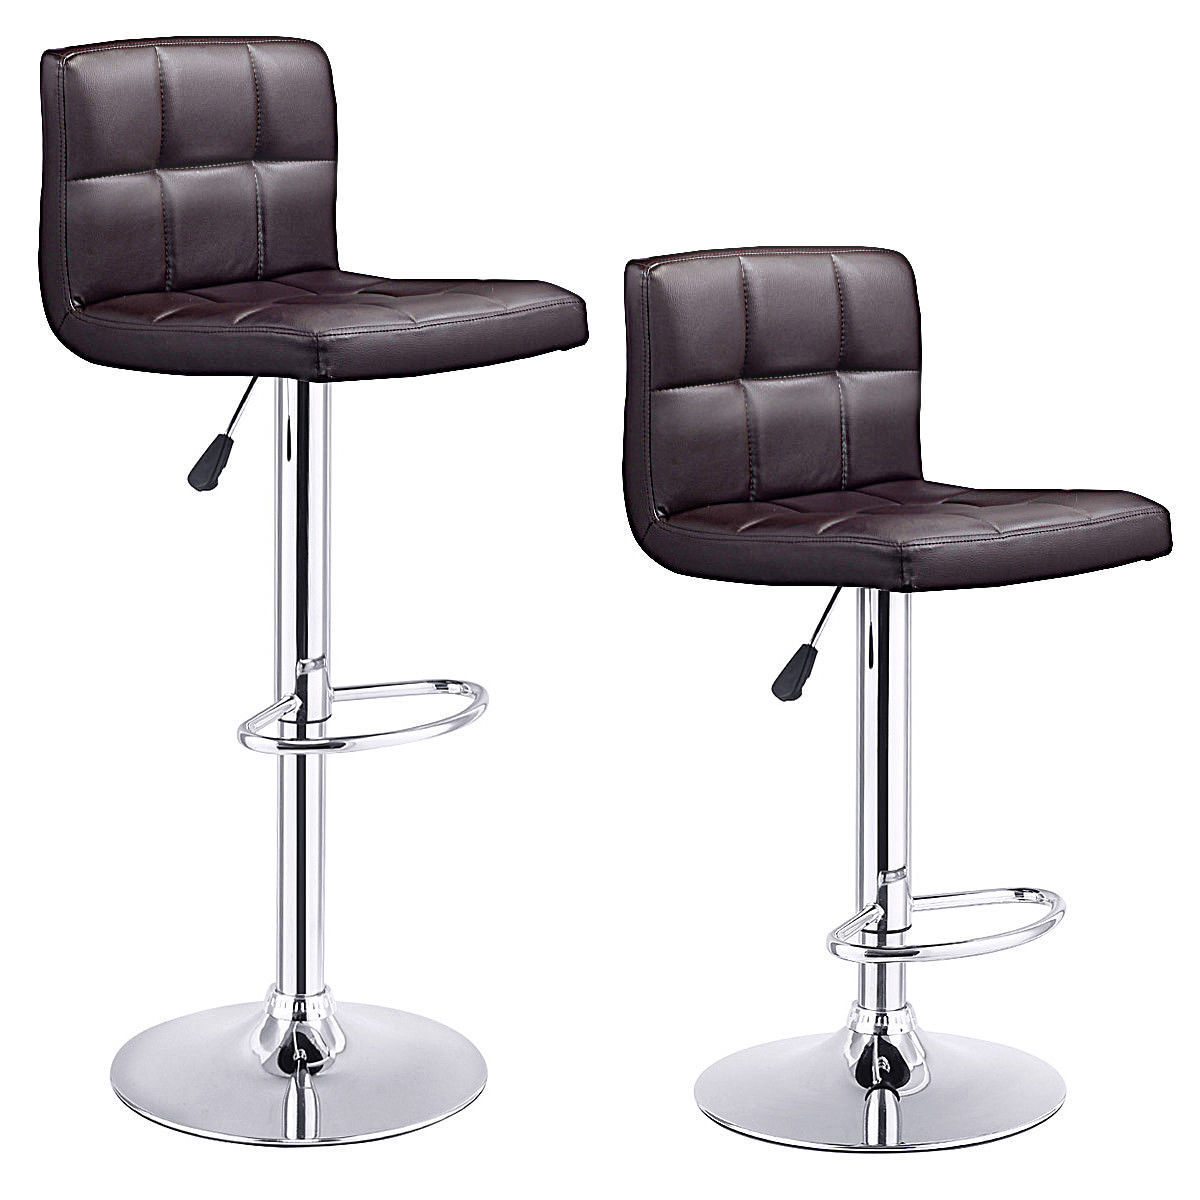 Costway Set Of 2 Bar Stools PU Leather Adjustable Bar Stool Swivel Pub Chairs Brown by Costway